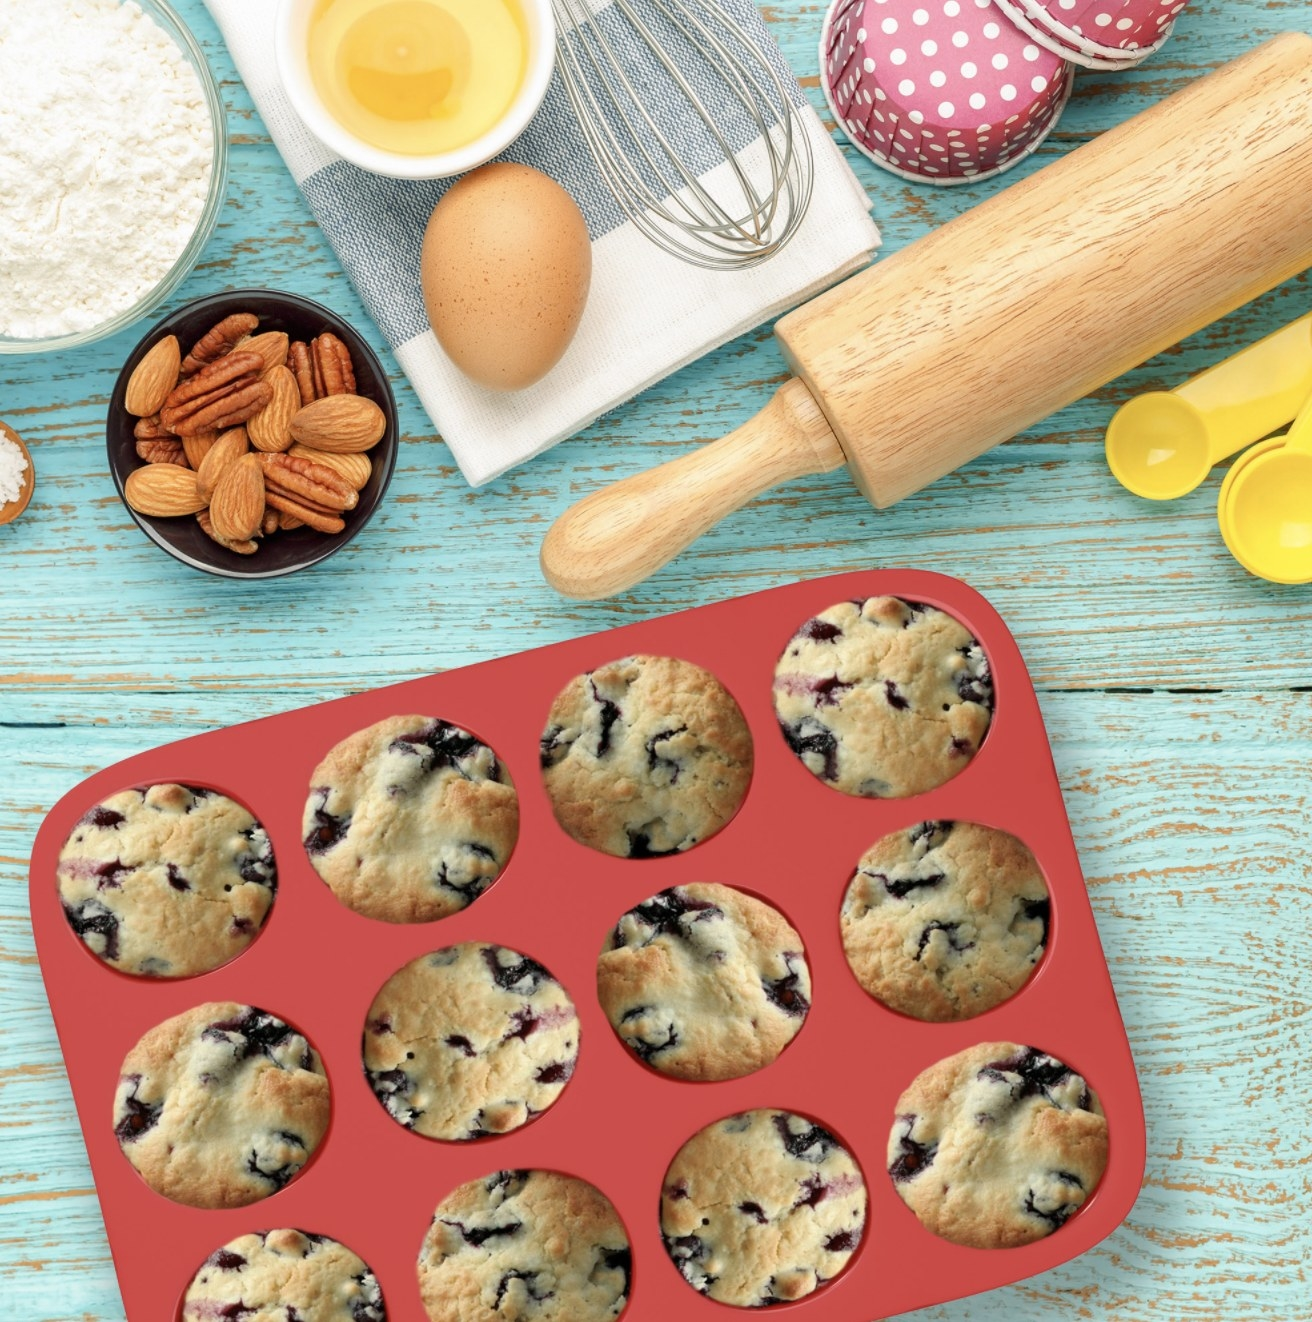 A red silicone baking tray on a kitchen counter with twelve blueberry muffins inside